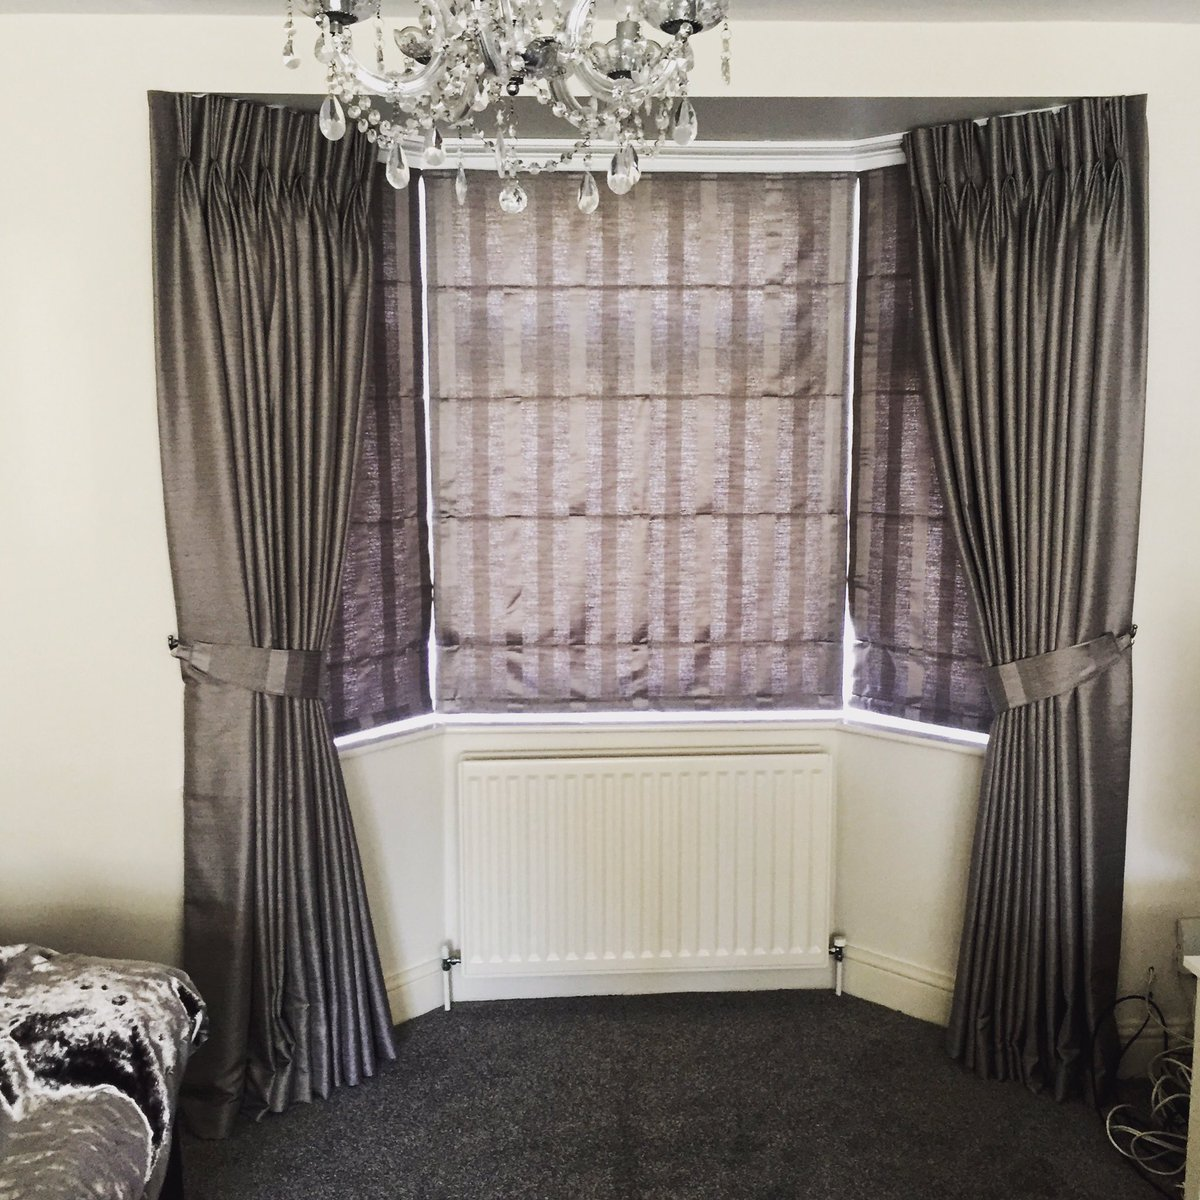 New Fabric Curtains Look Roman Blinds Special Price 20 Discountpictwitter 1FgIBrB9XR